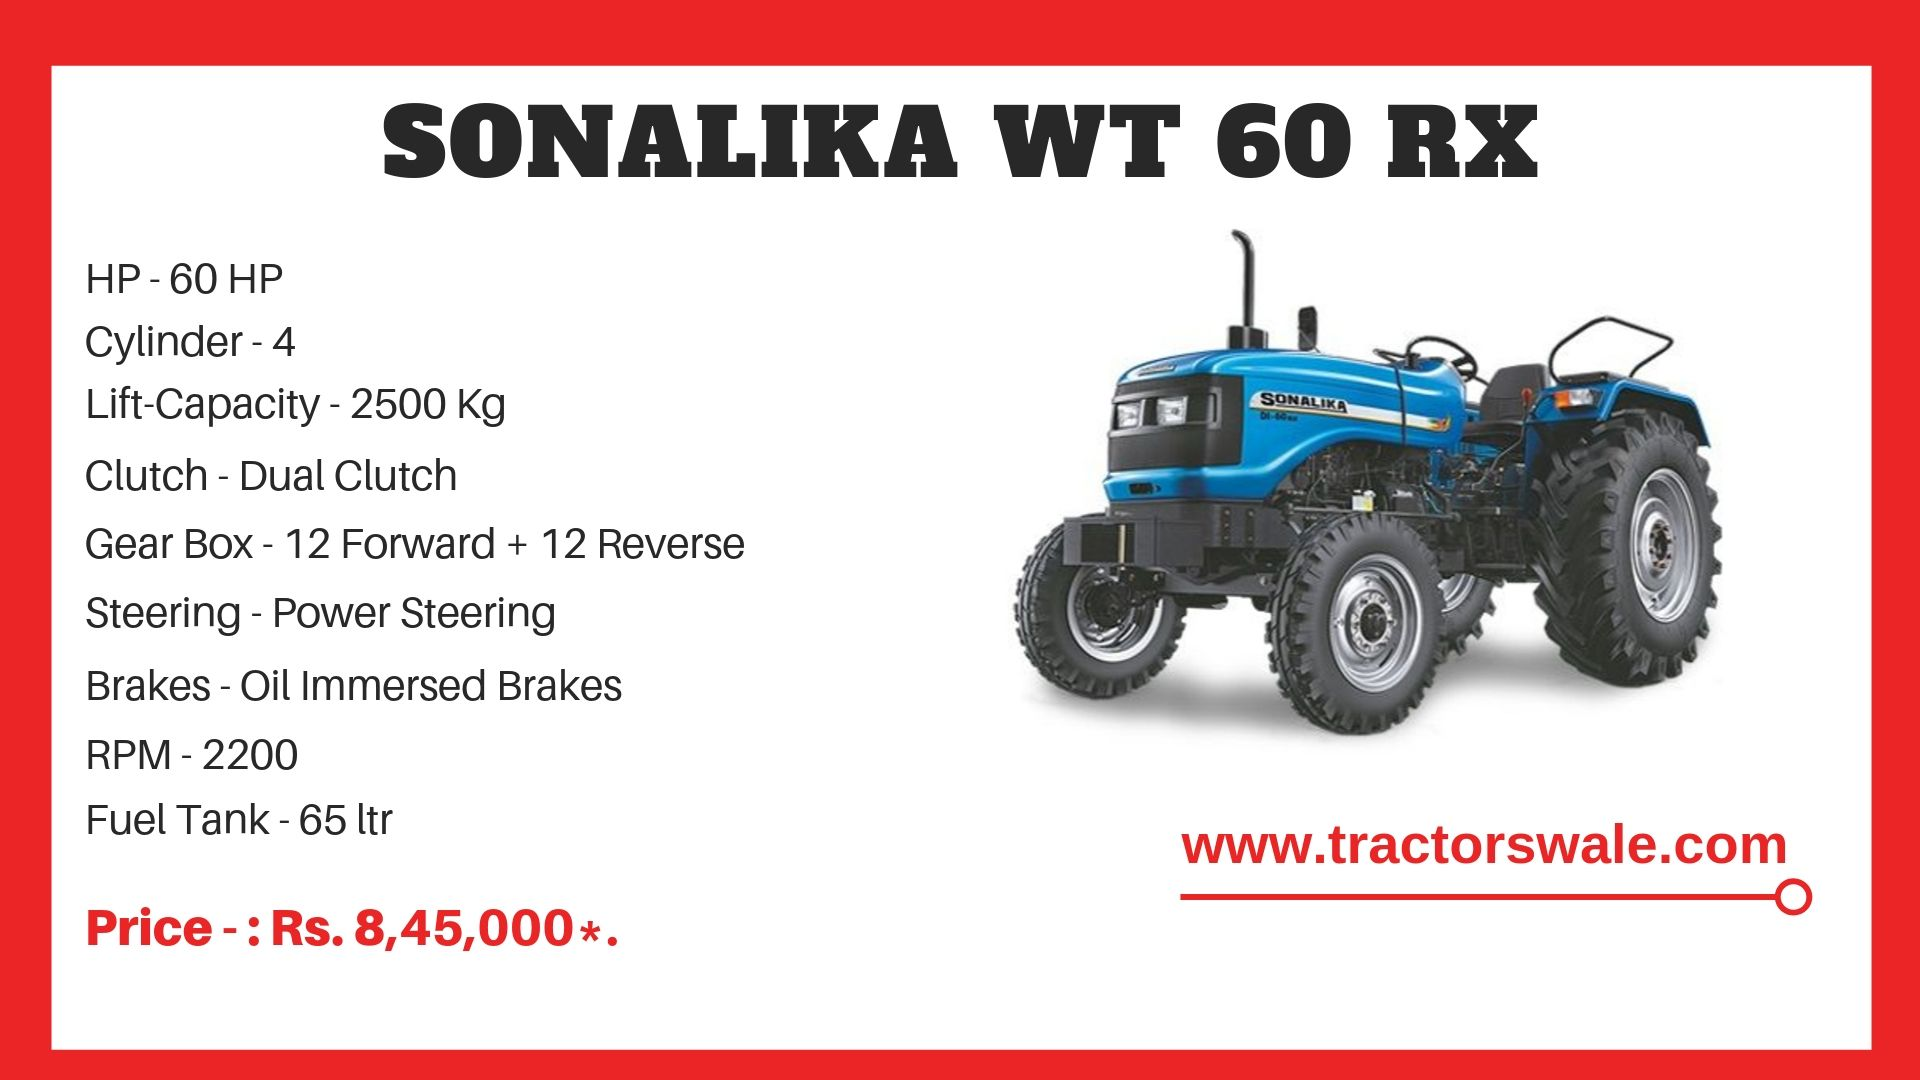 Sonalika Worldtrack 60 RX tractor specifications